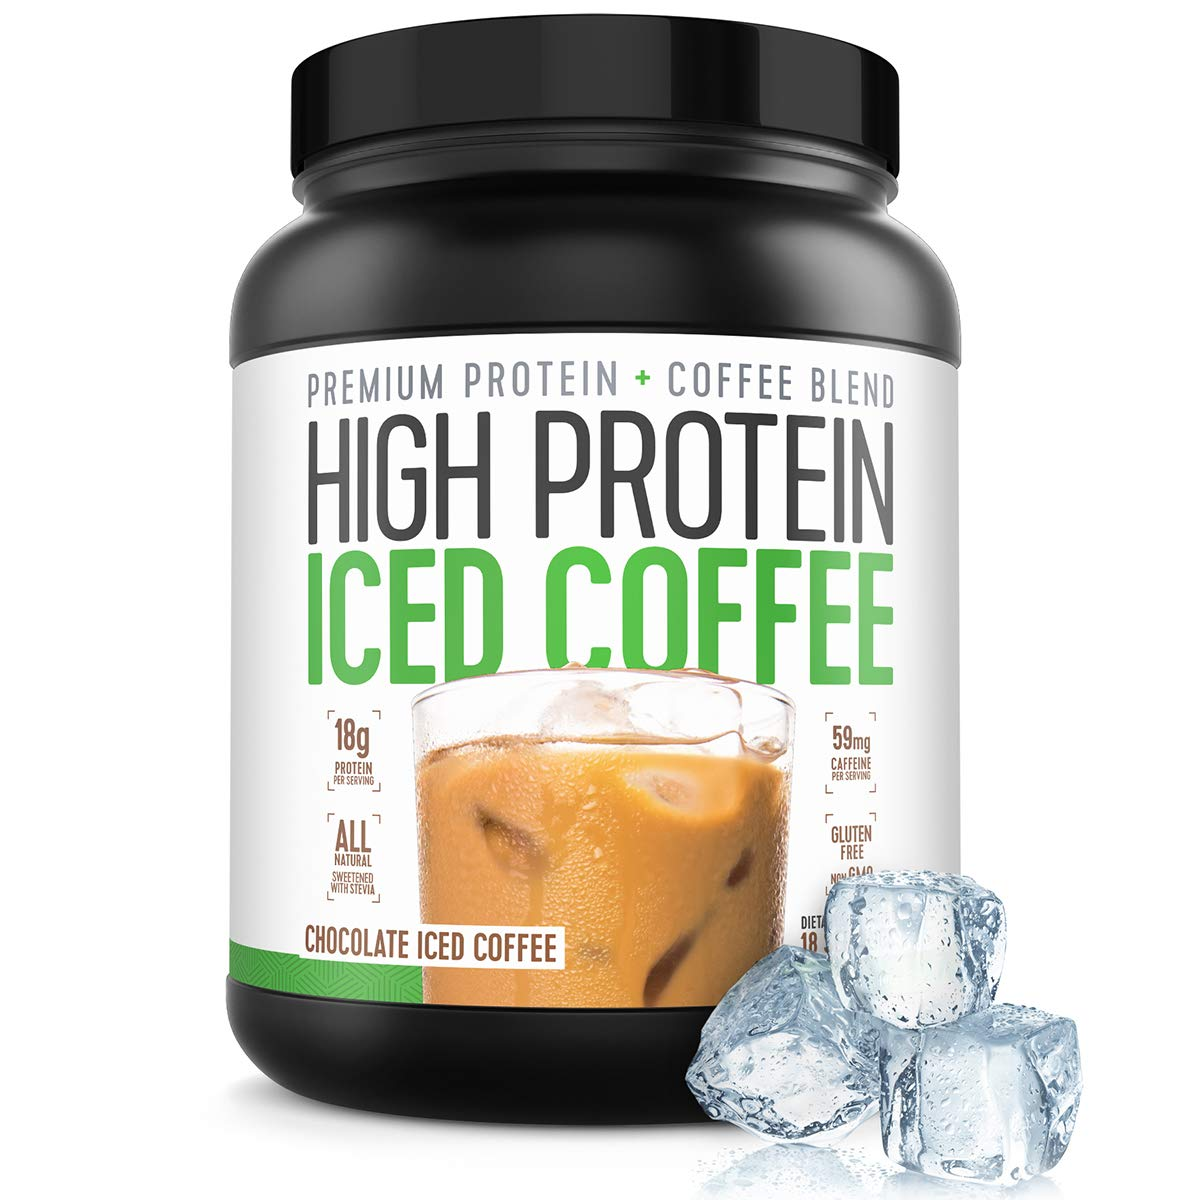 Protein Coffee Iced Coffee | High Protein Coffee | Protein Coffee - Keto Friendly | 18g of Protein, 2g Carbs, All Natural | Chocolate Iced Coffee, 18 Servings by High Protein Iced Coffee